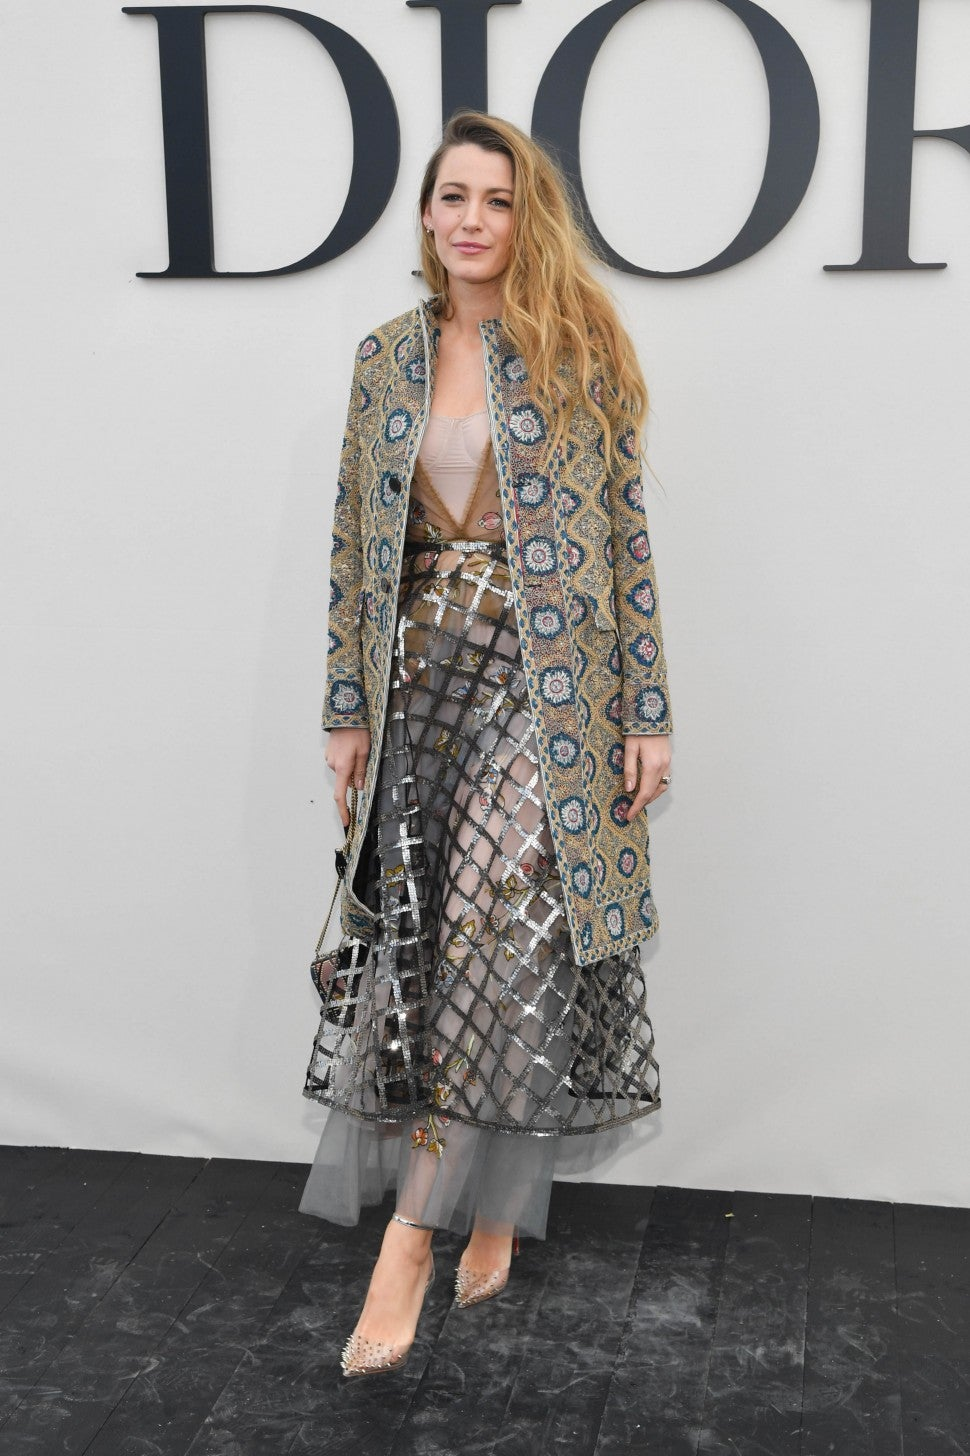 Blake Lively at Dior in coat